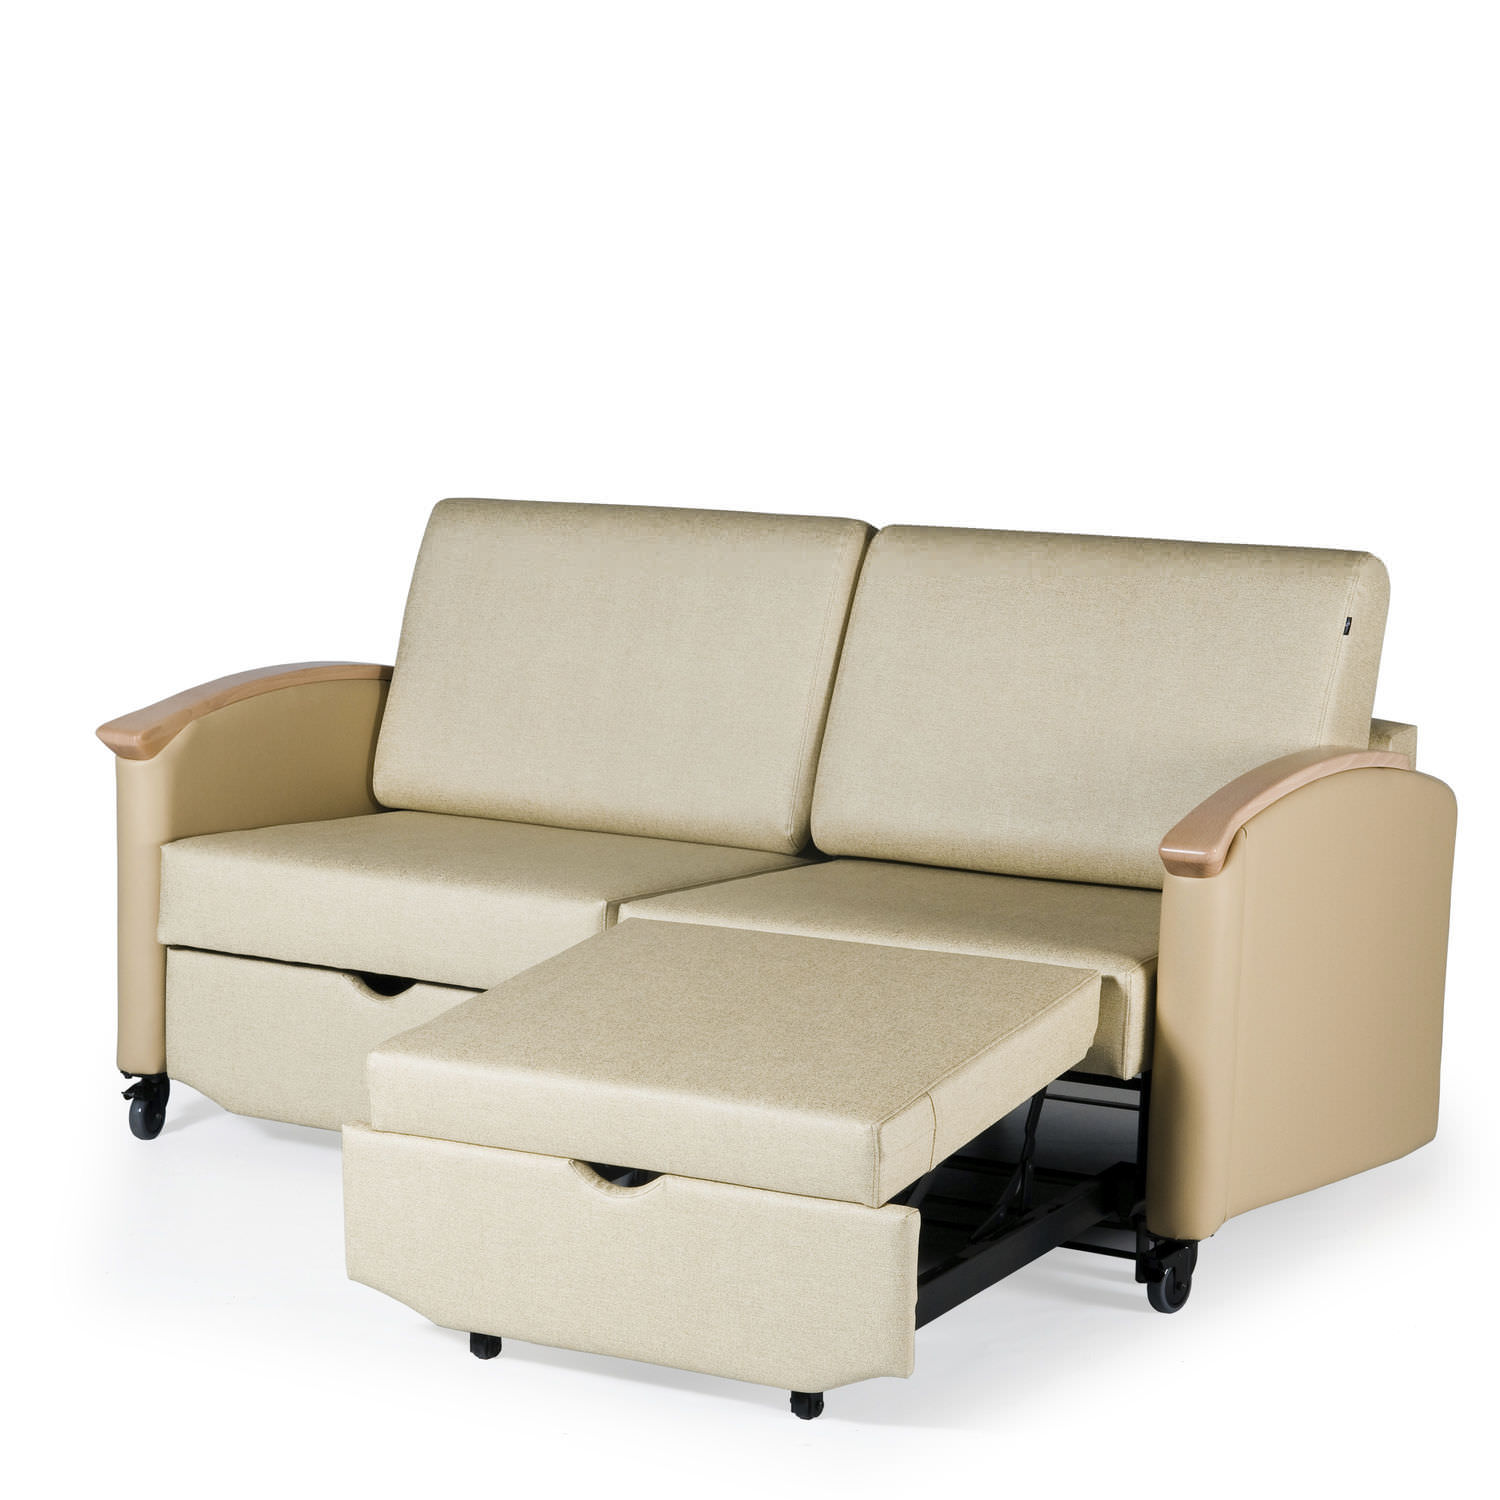 2 seater sofa bed for healthcare facilities HARMONY HA2821L